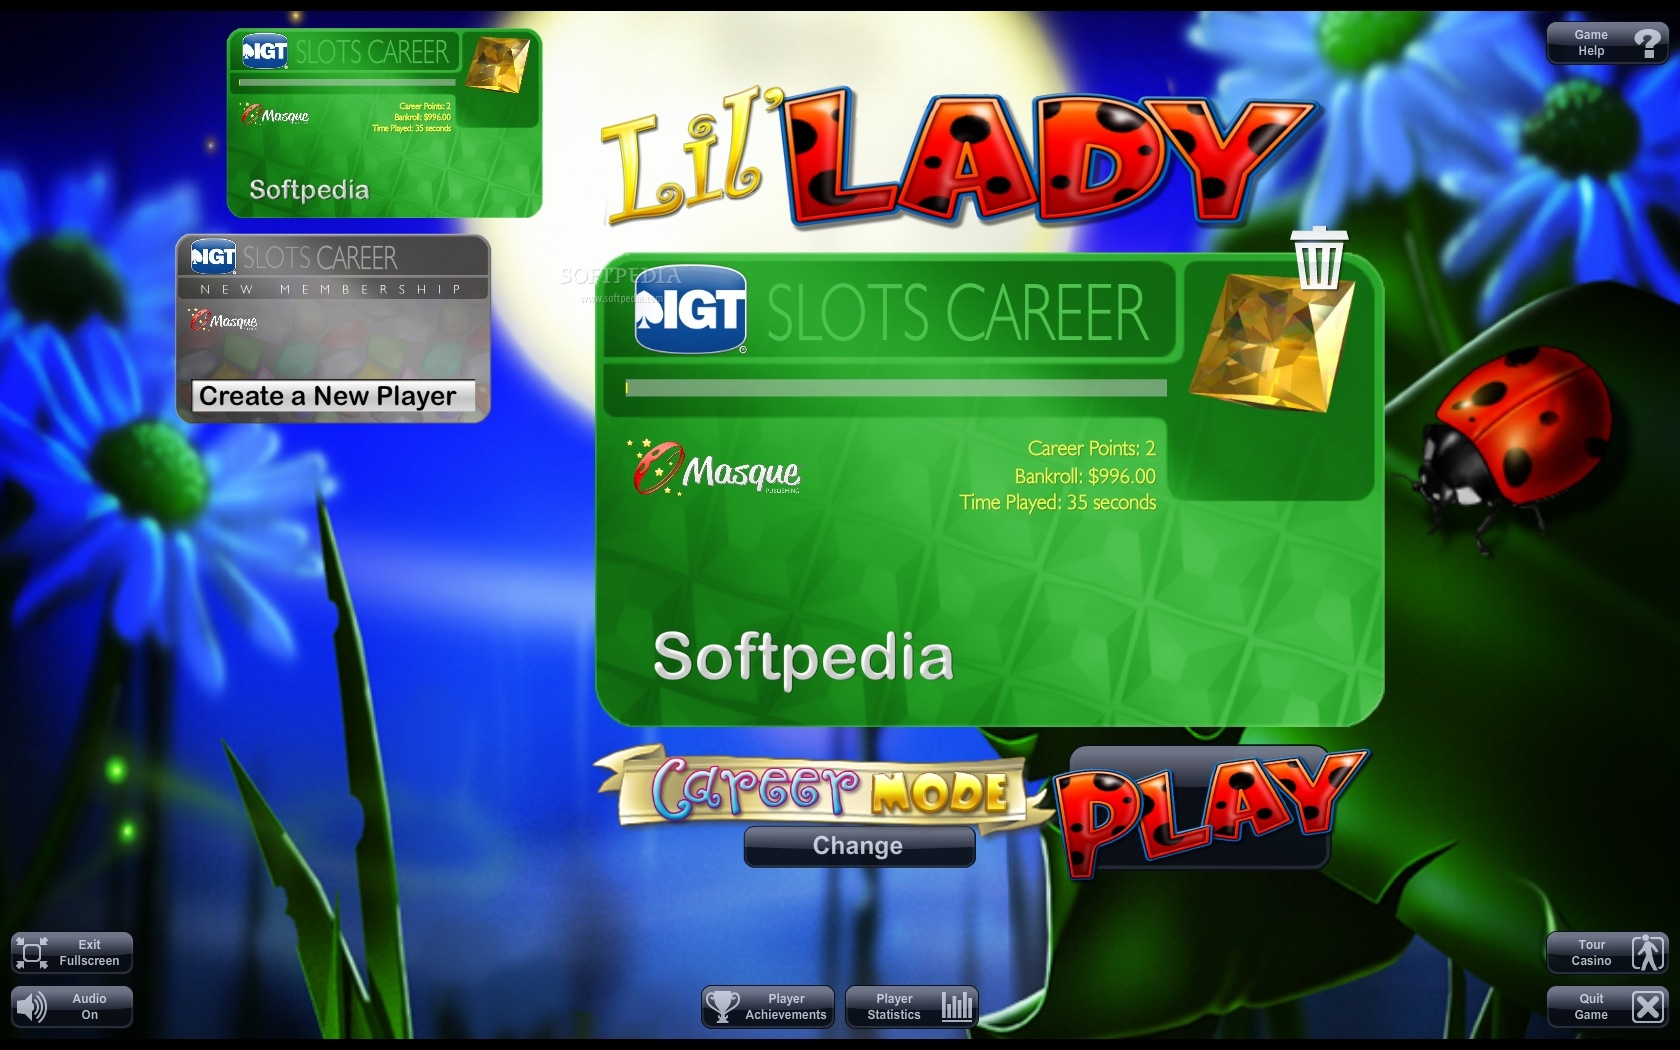 Igt slots lil lady download 6 card poker combinations